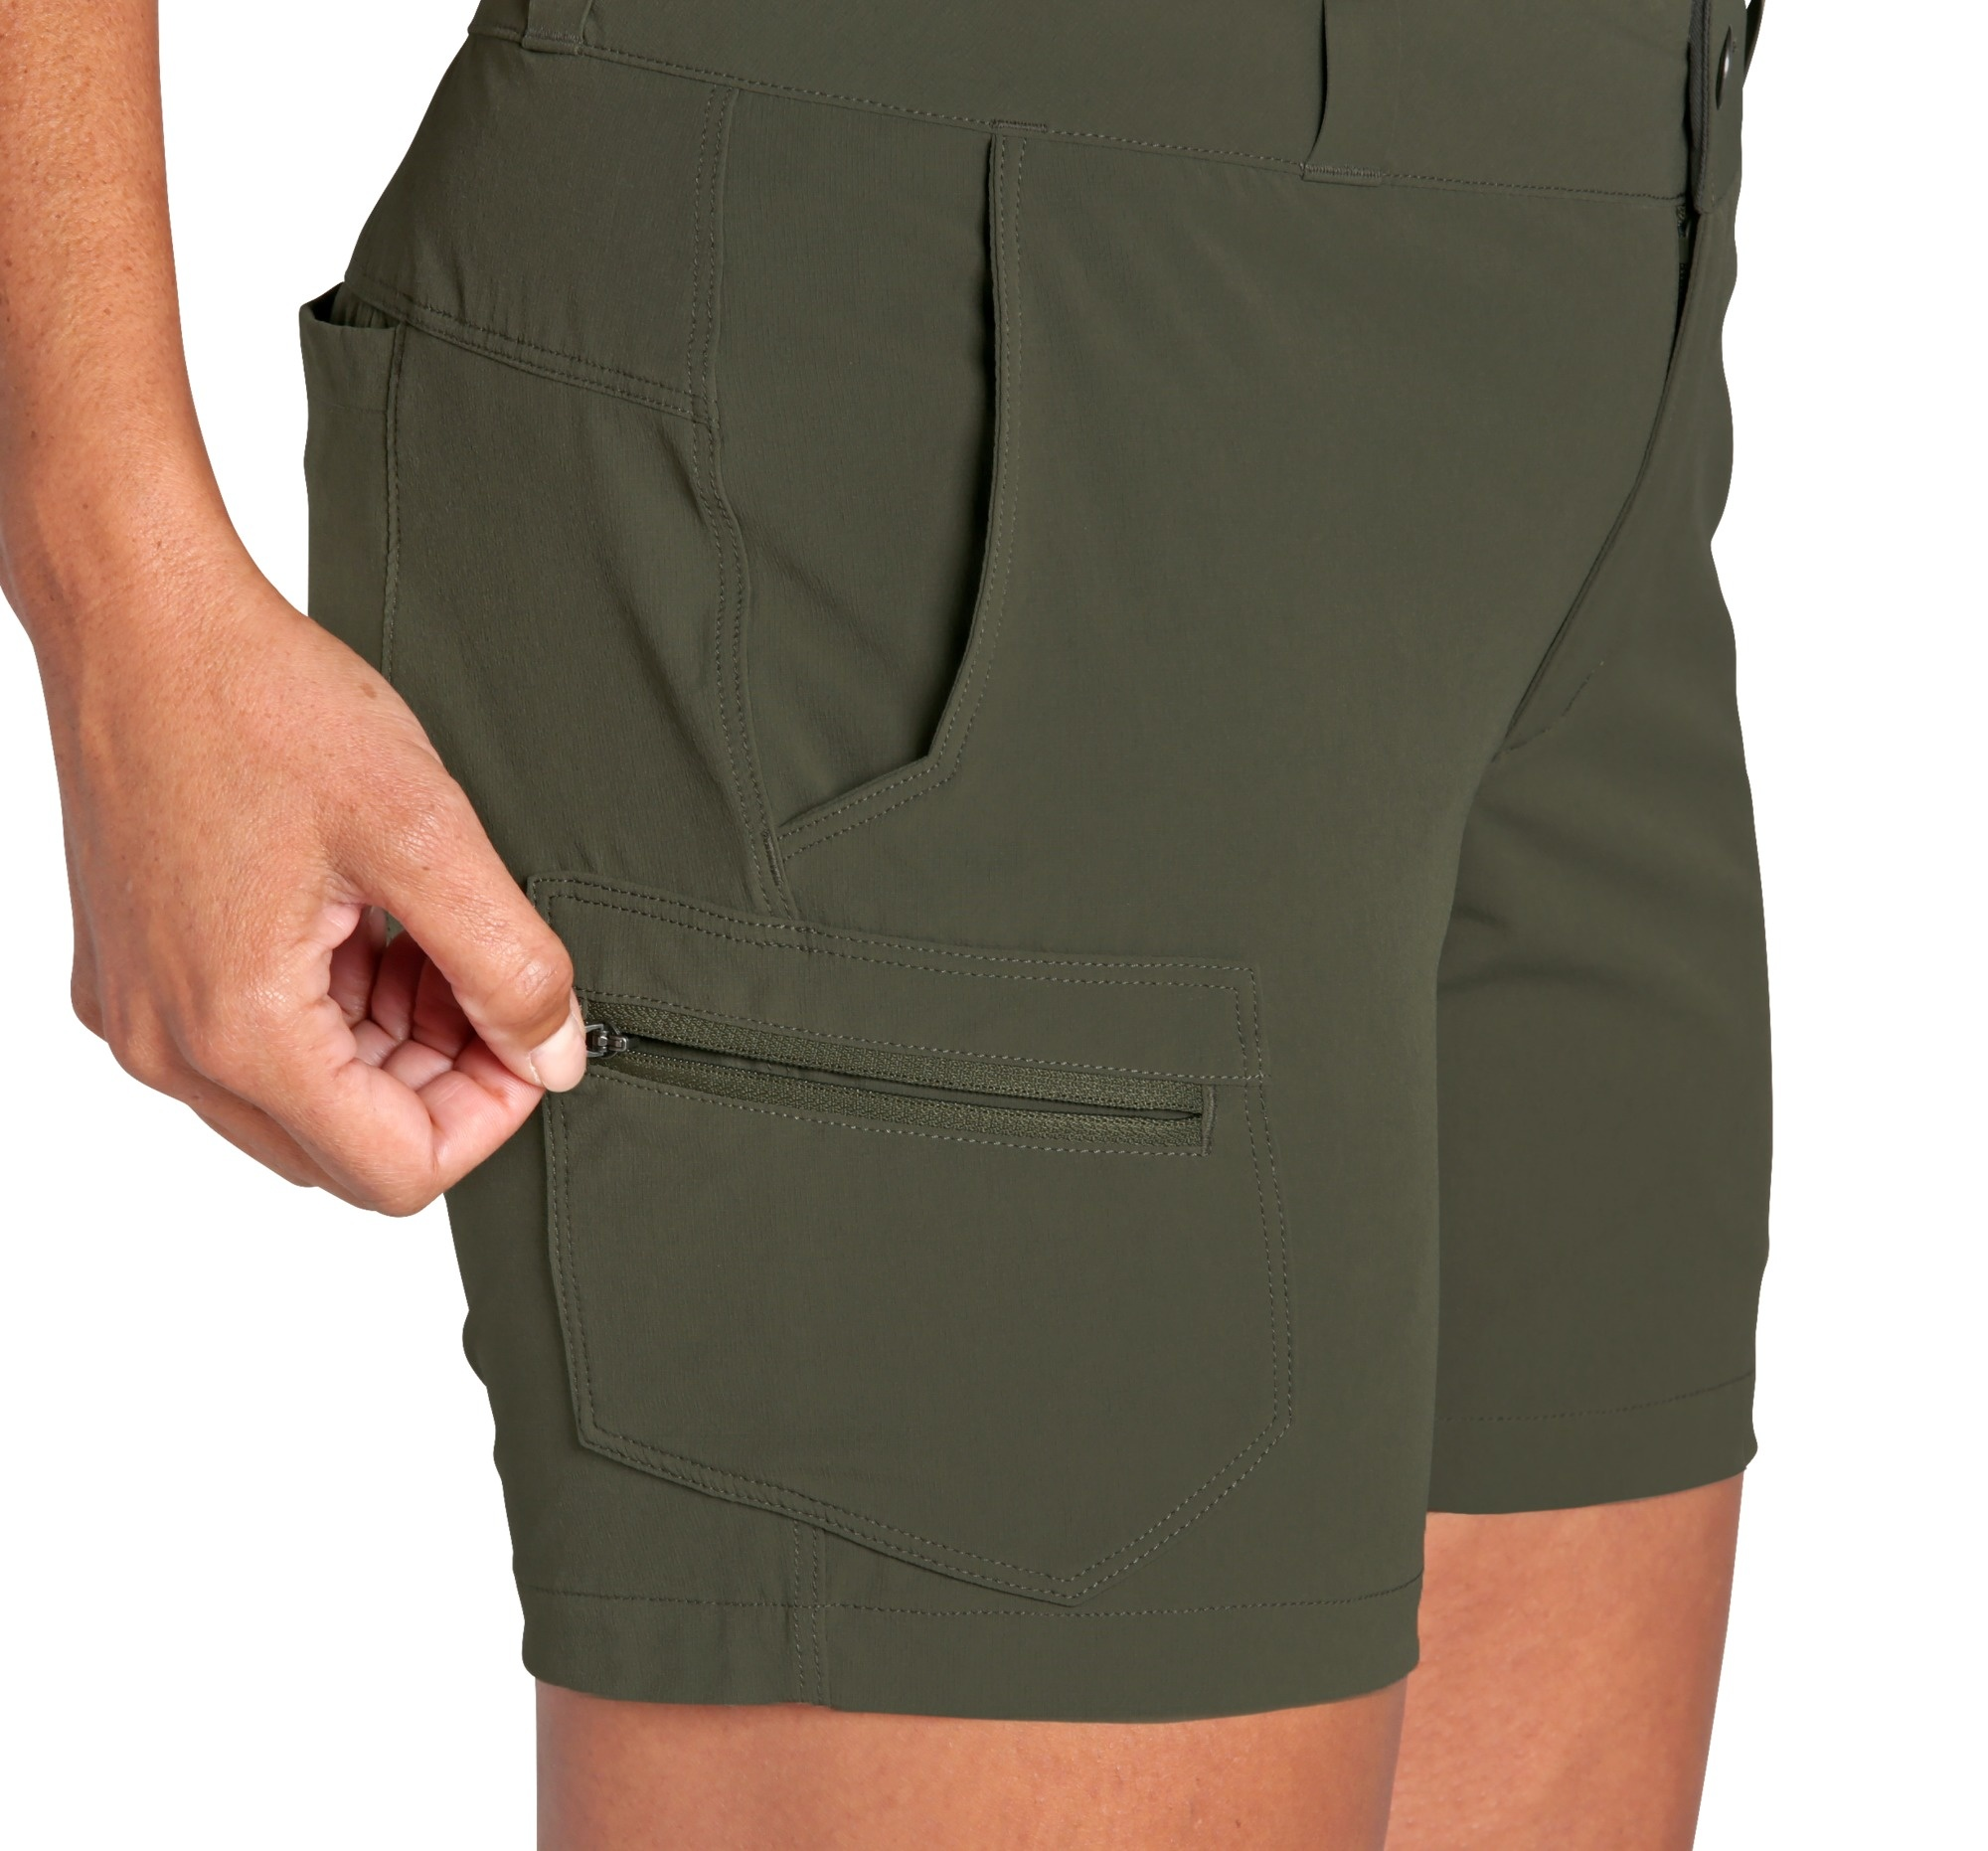 "Outdoor Research OR Women's Ferrosi Shorts -5"" Inseam"